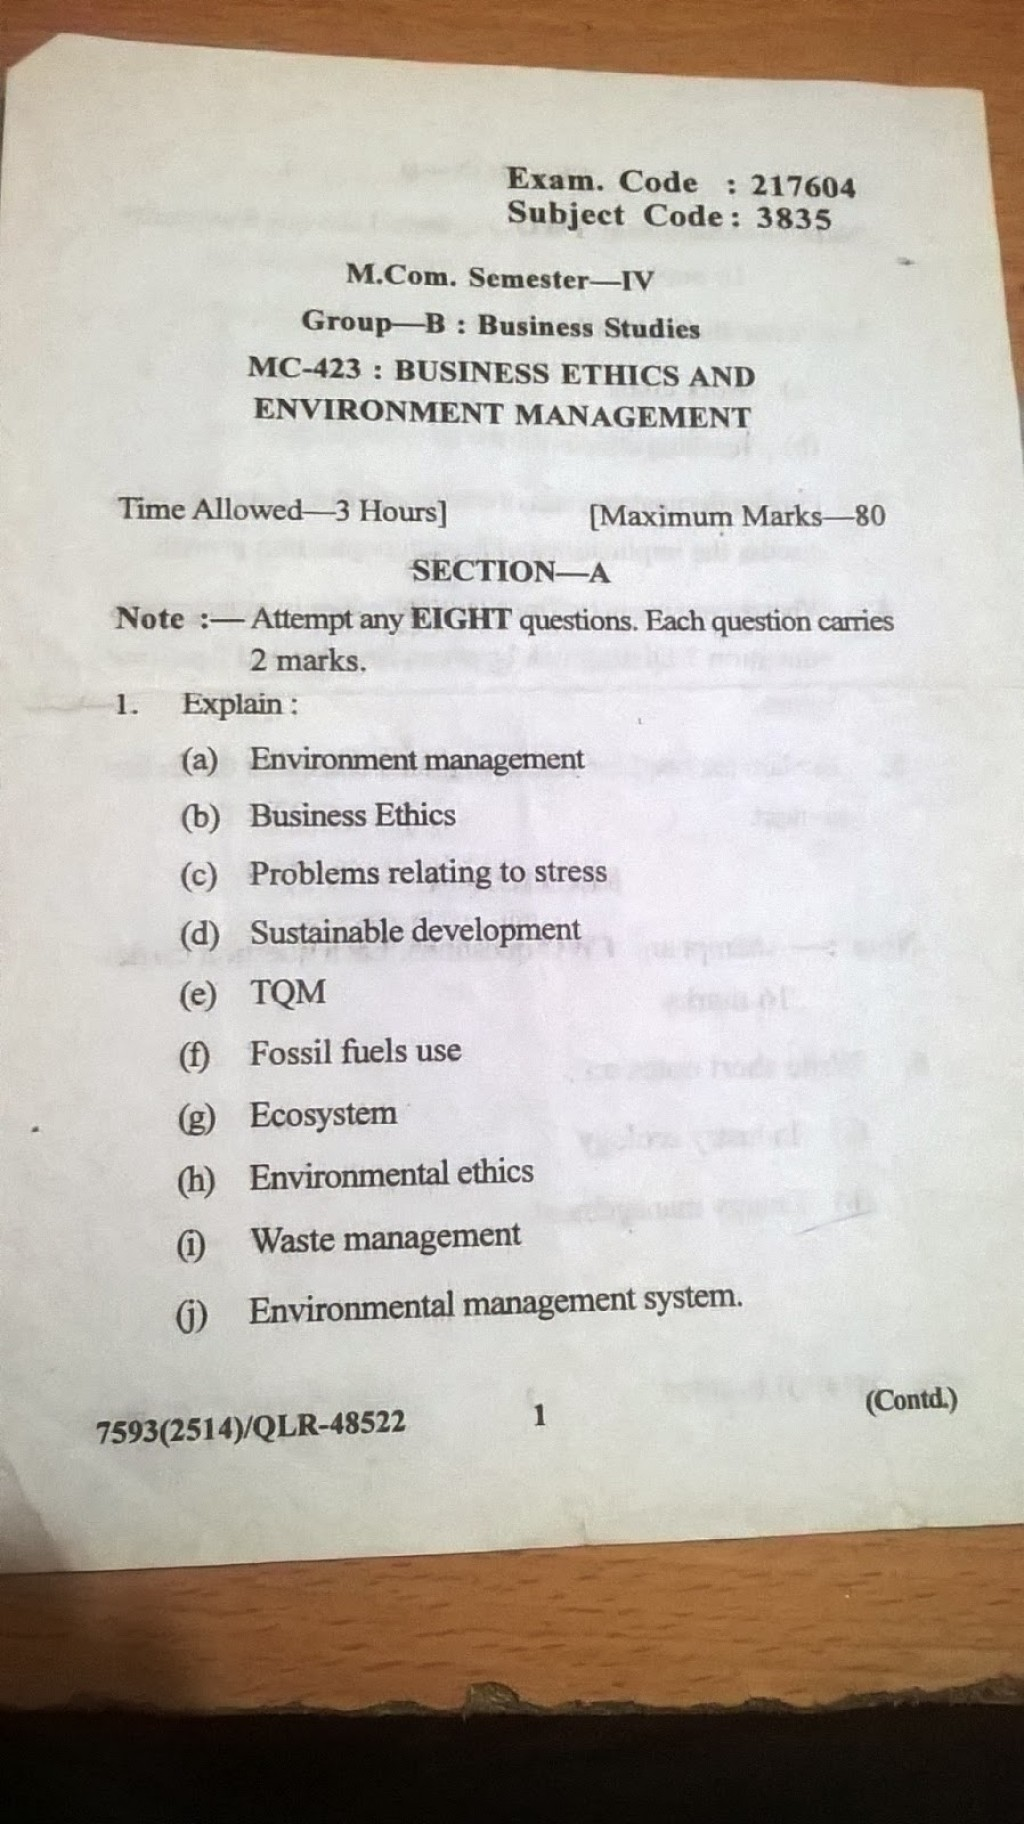 025 Research Paper Business Management Topic For Businessethicsandenviornmentmanagement4thsem Unforgettable Topics Techniques Pdf Large